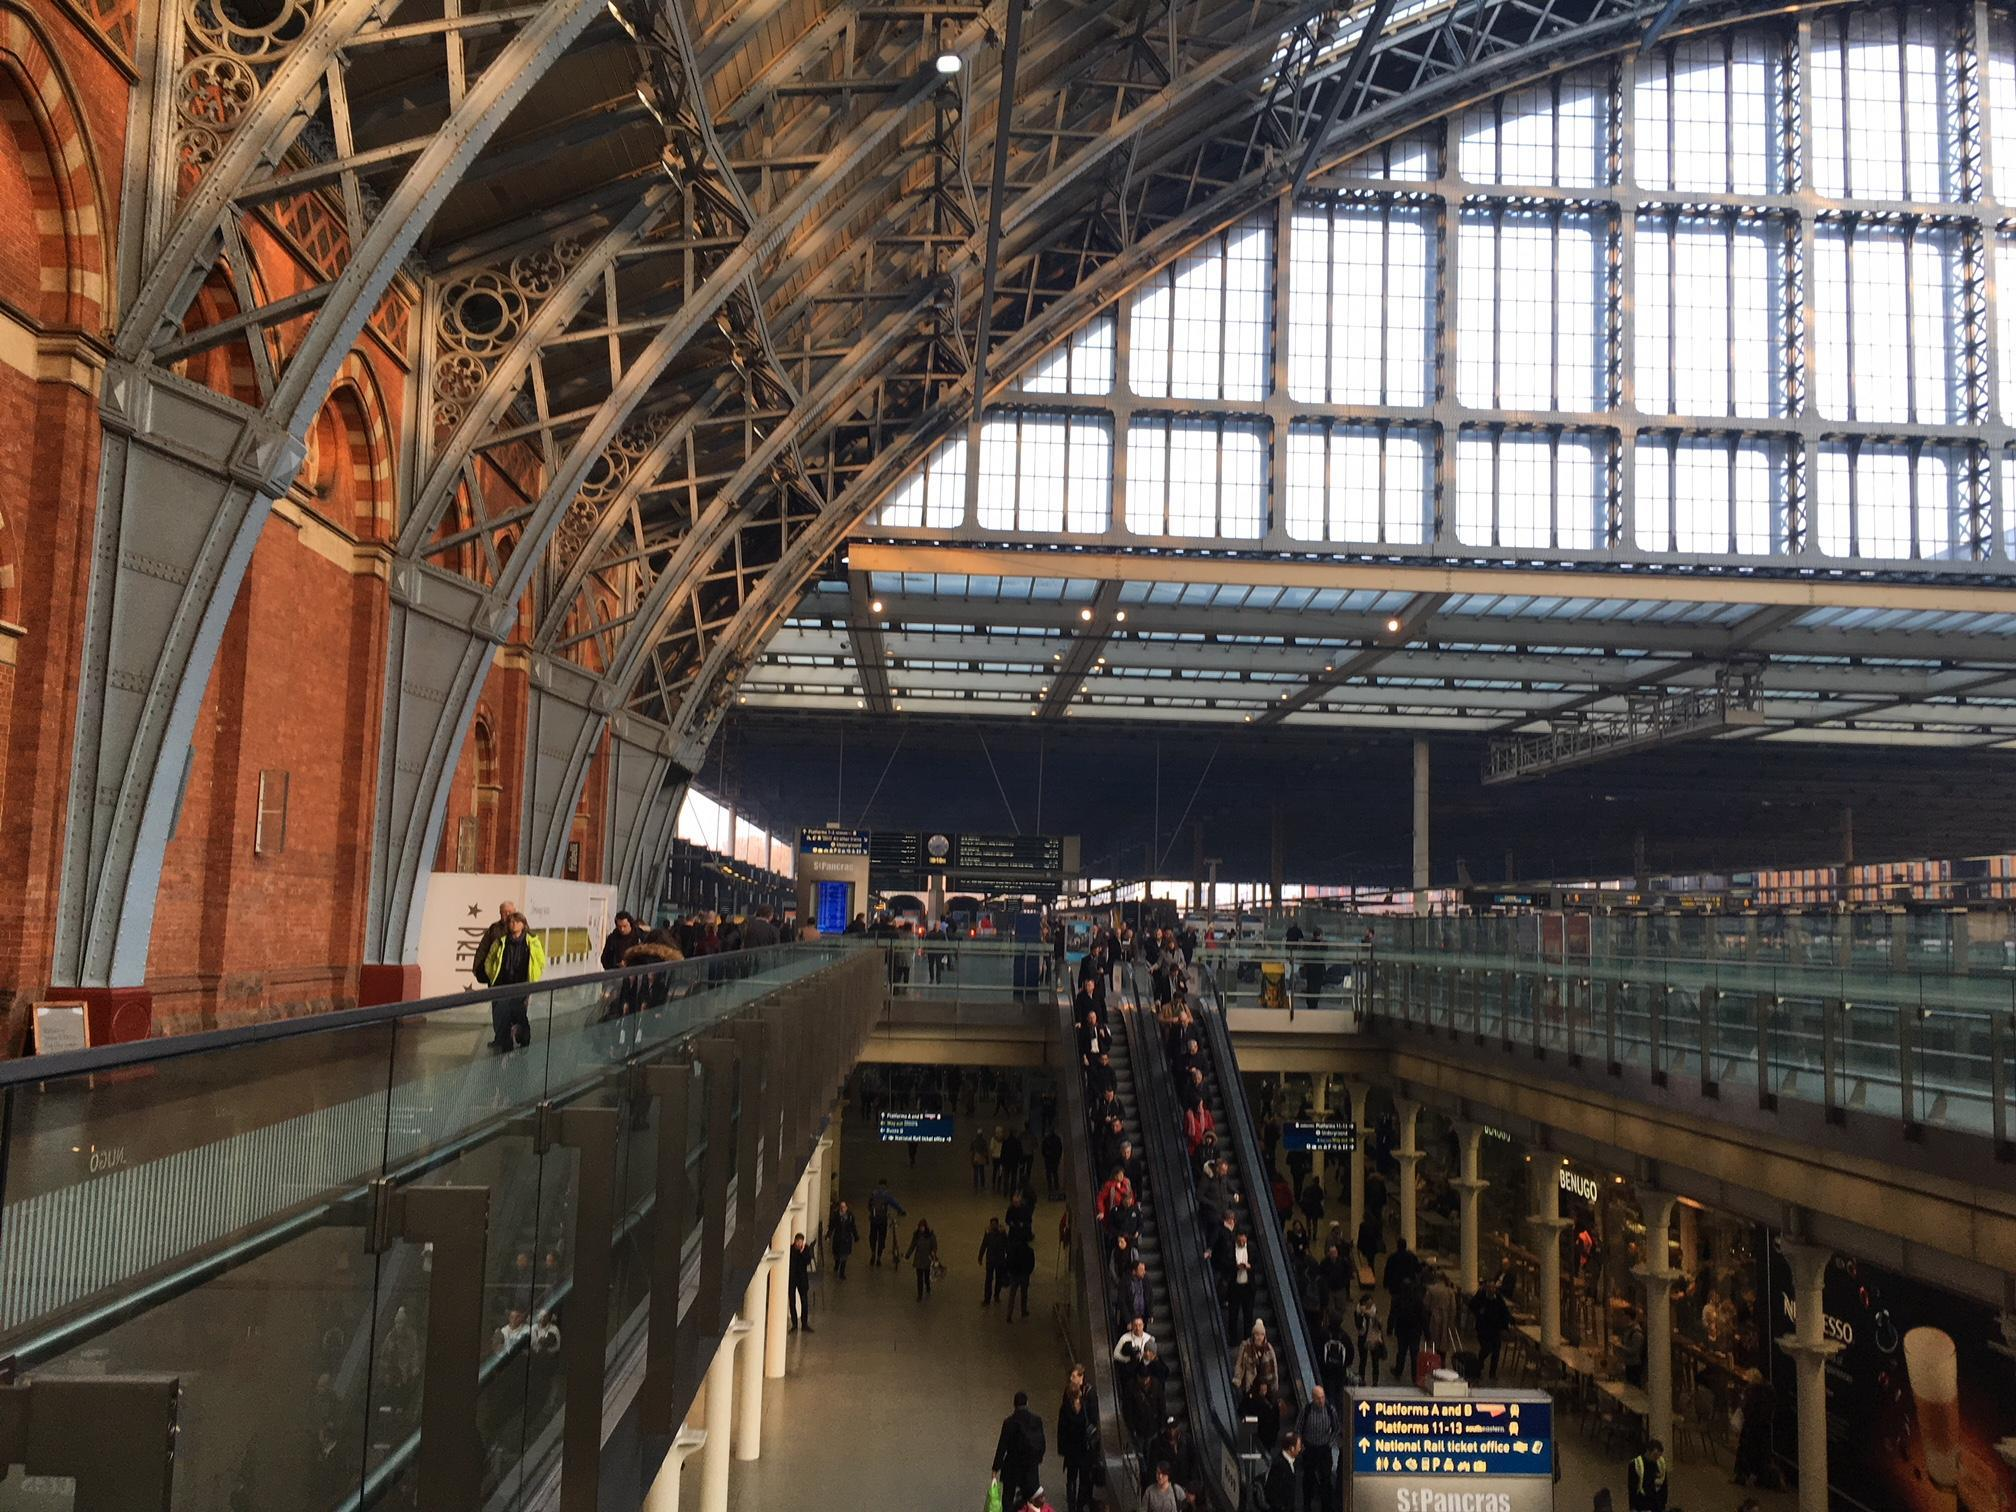 UK rail timetable delays to jeopardise journeys from May onwards